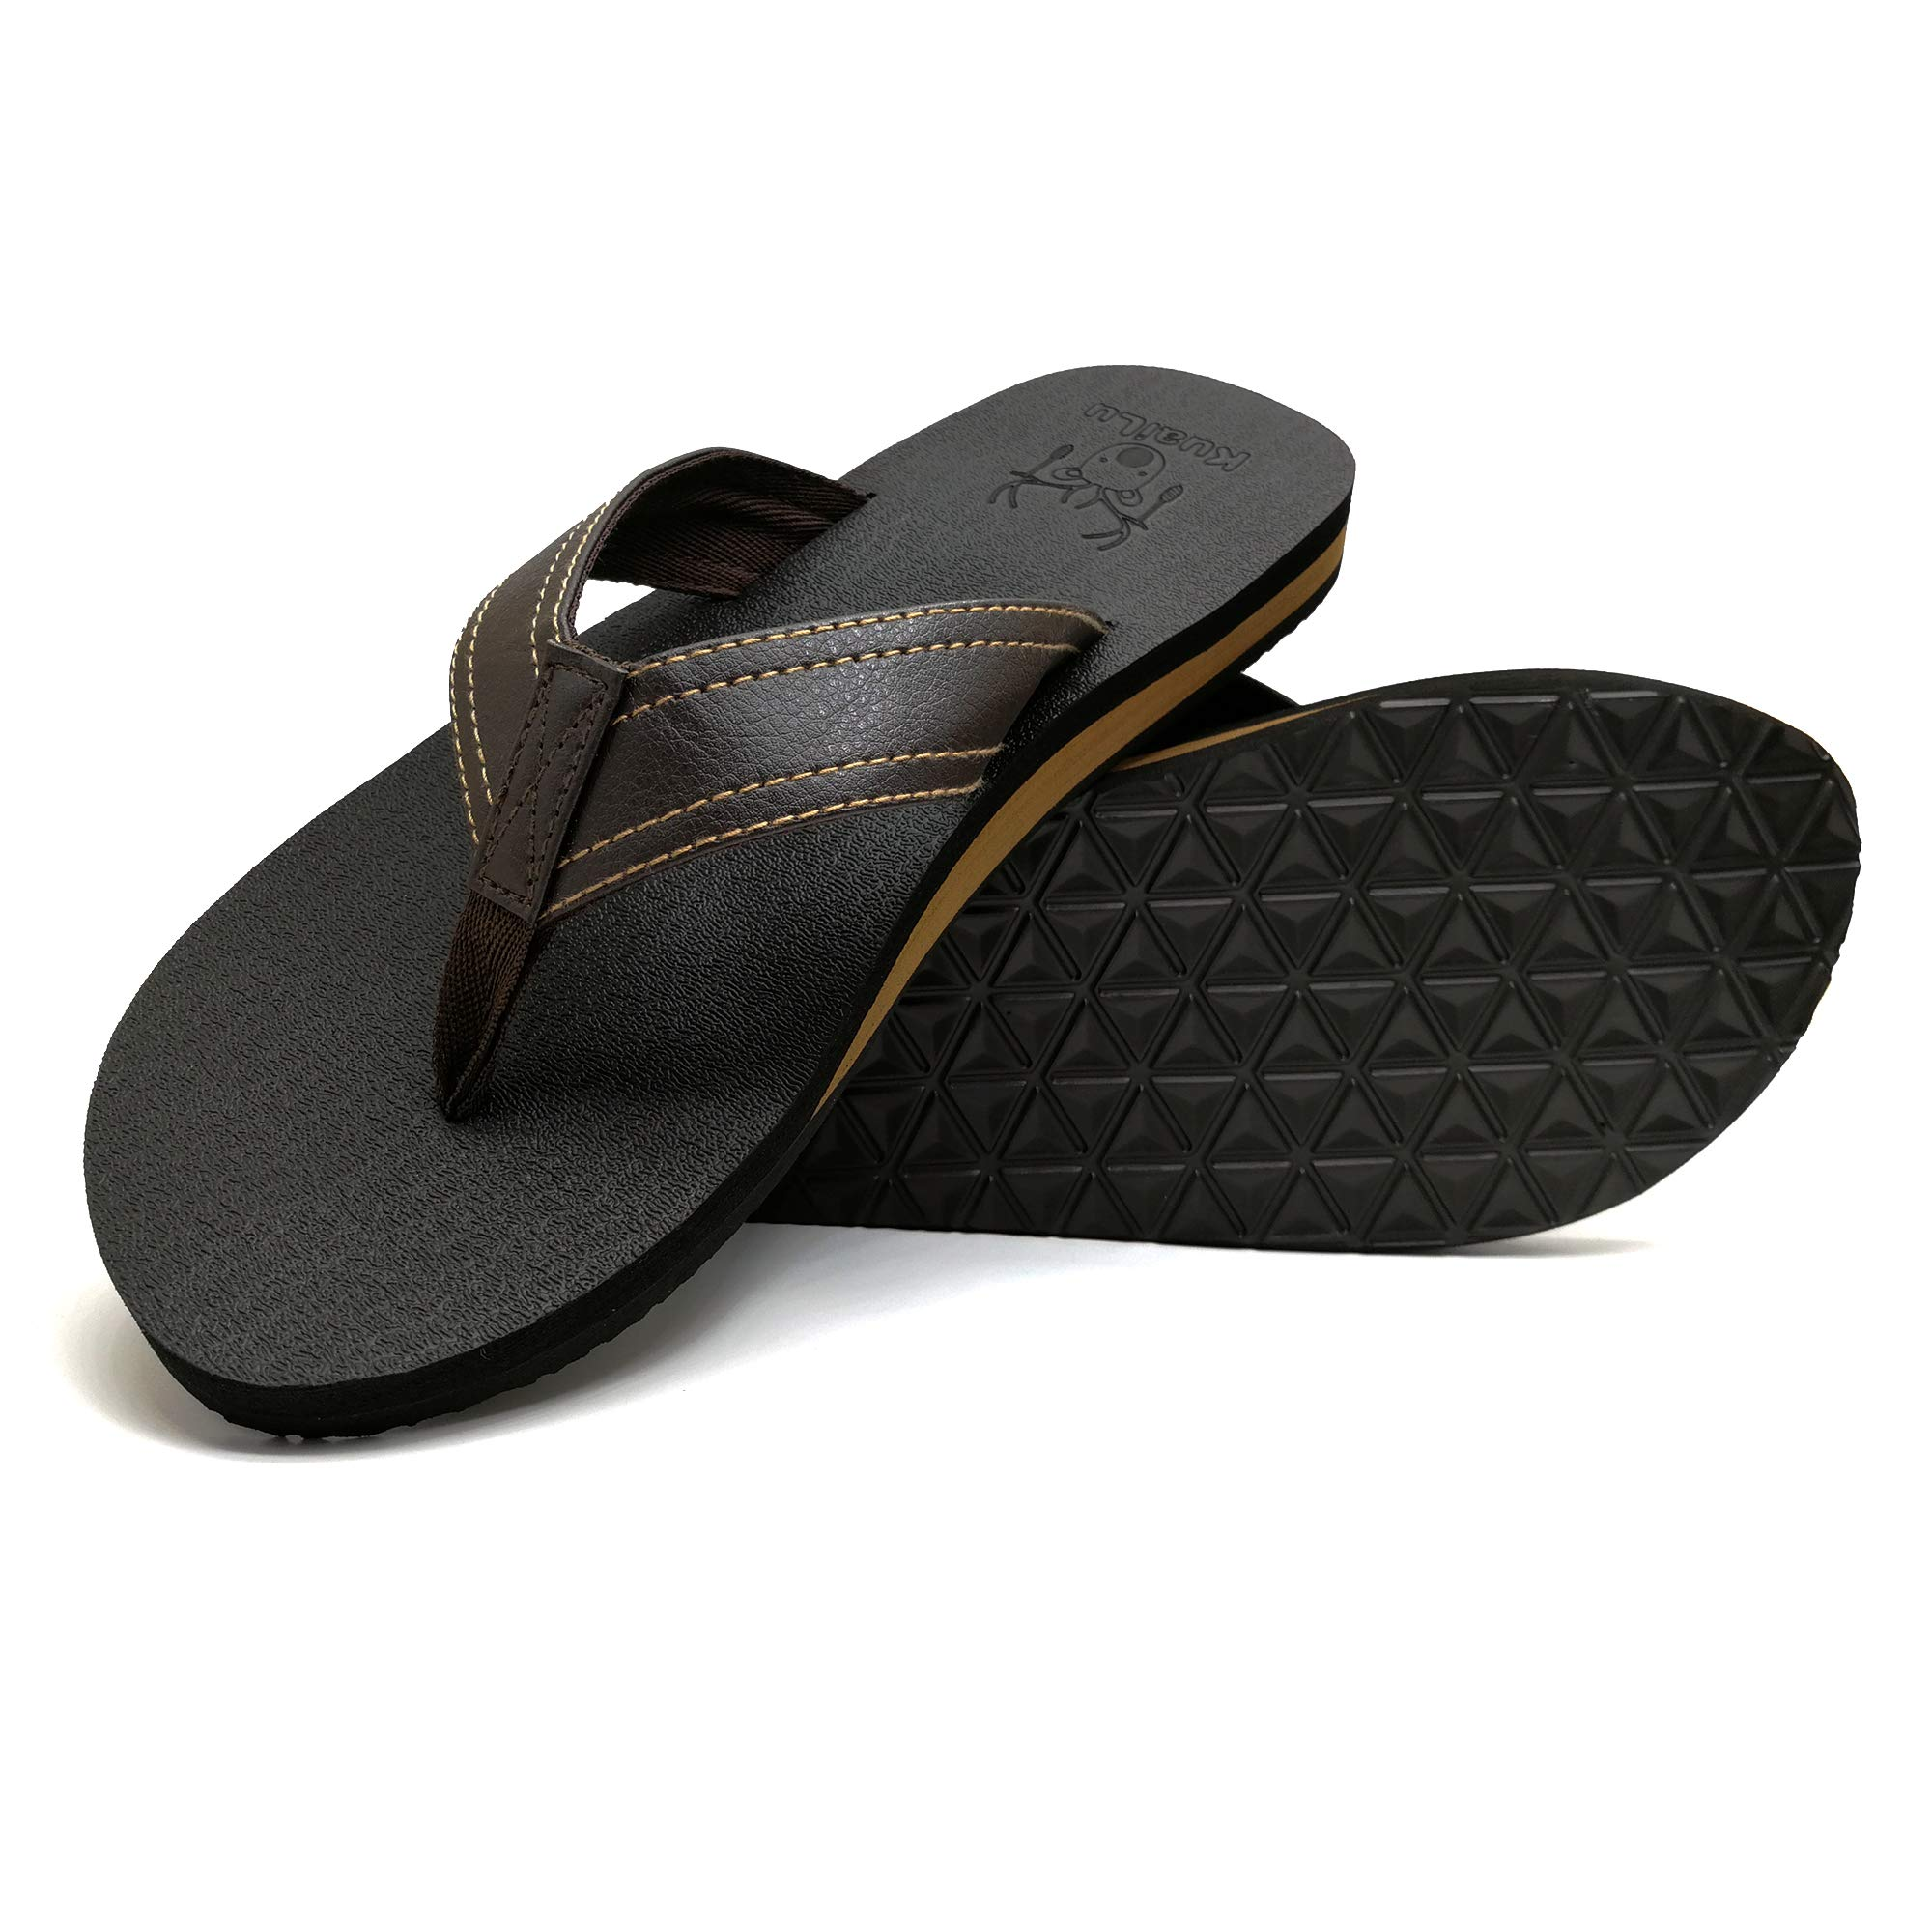 f3fec6a8034e Galleon - KuaiLu Men s Yoga Mat Leather Flip Flops Thong Sandals Arch  Support